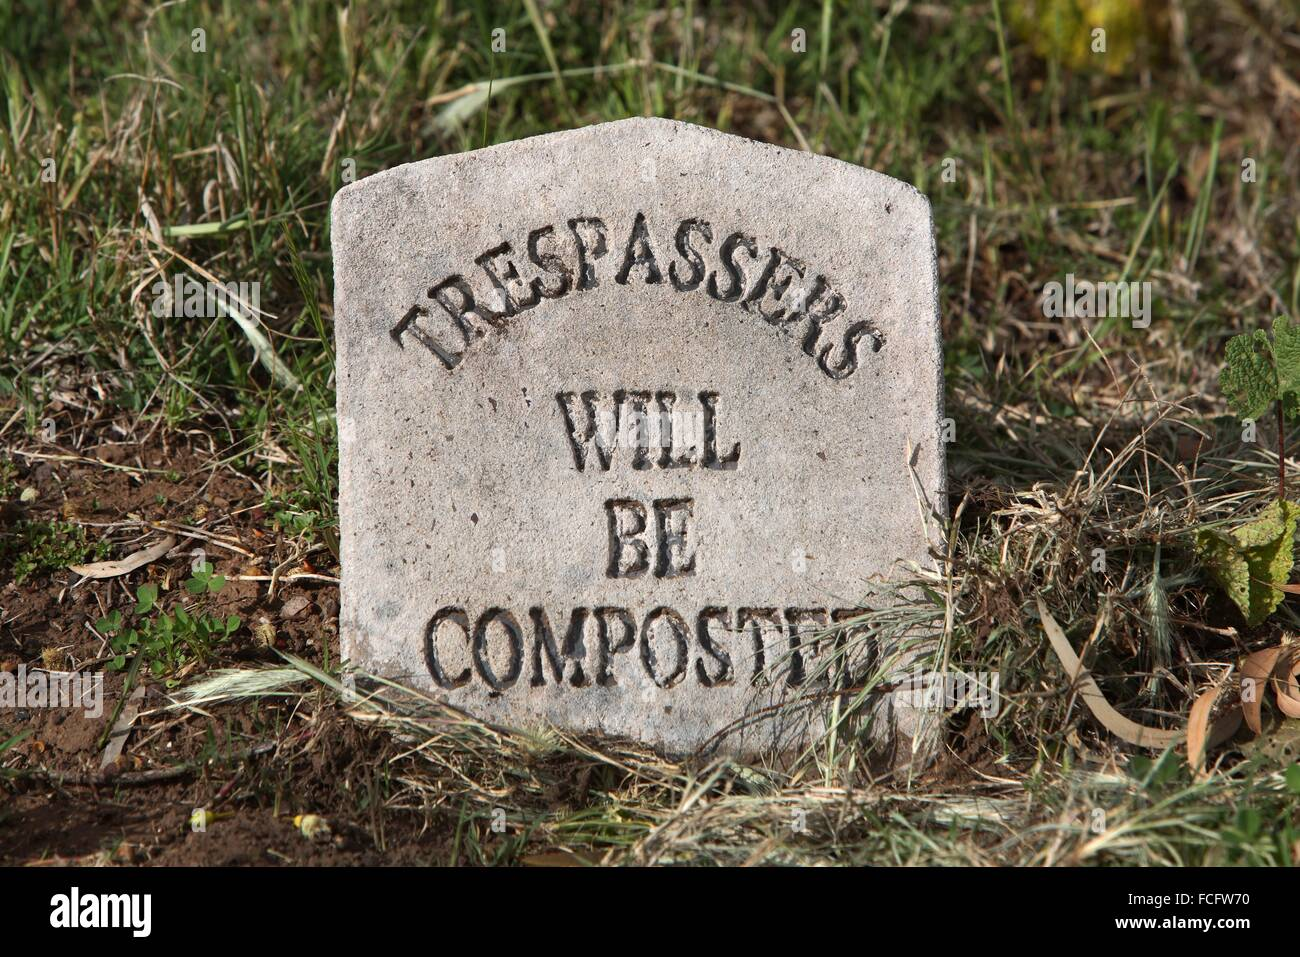 Trespassers will be composted funny warning sign